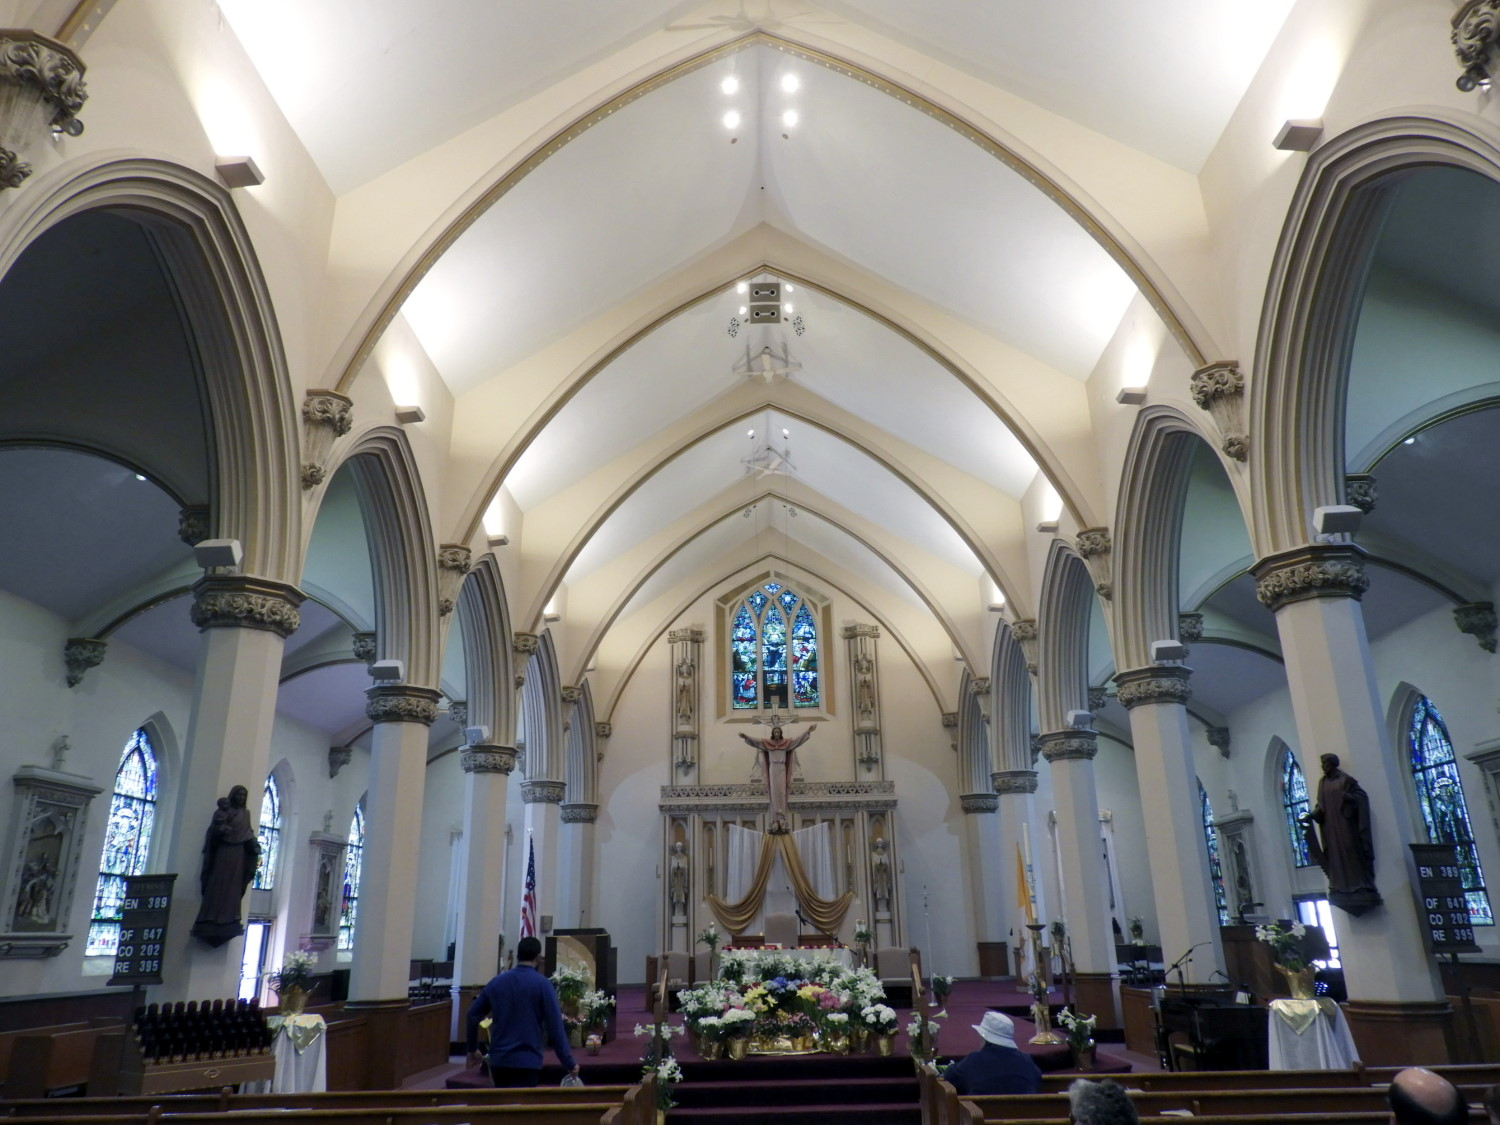 Interior of the sanctuary as designed in 1919. Photograph by Richard Heath, 2019